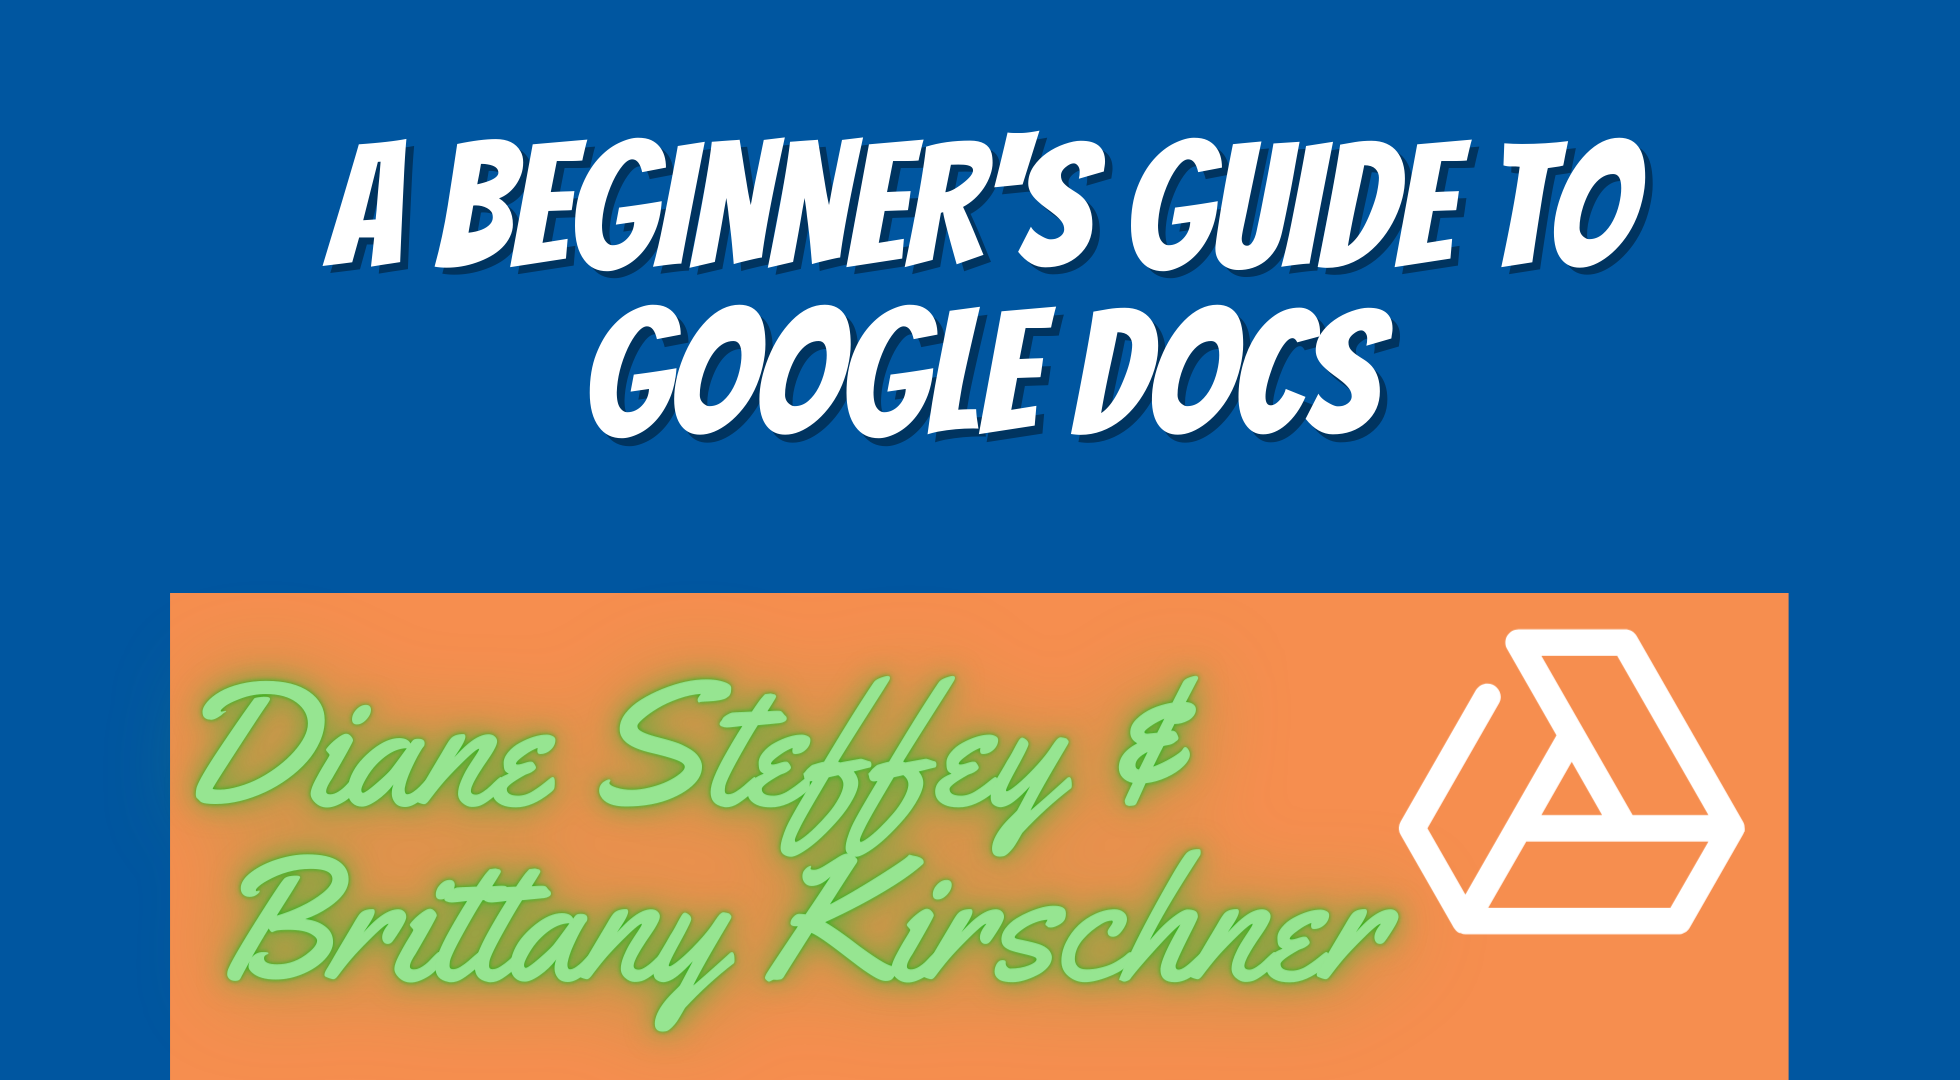 A Beginner's Guide to Google Docs